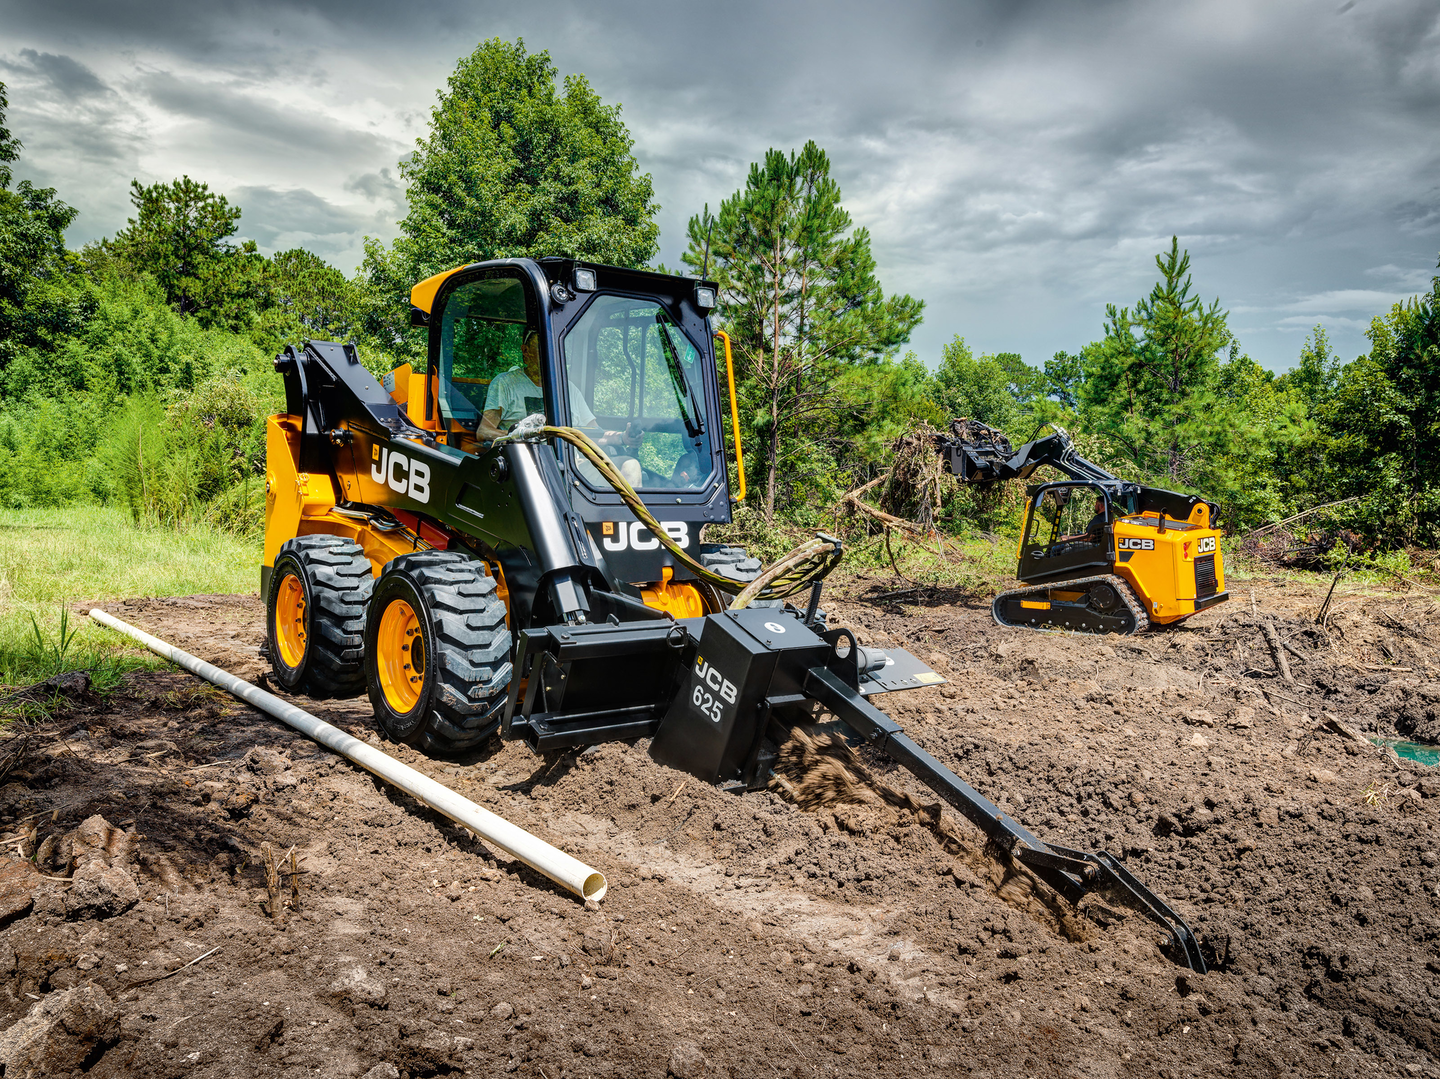 JCB skid steer with 625 trencher attachment